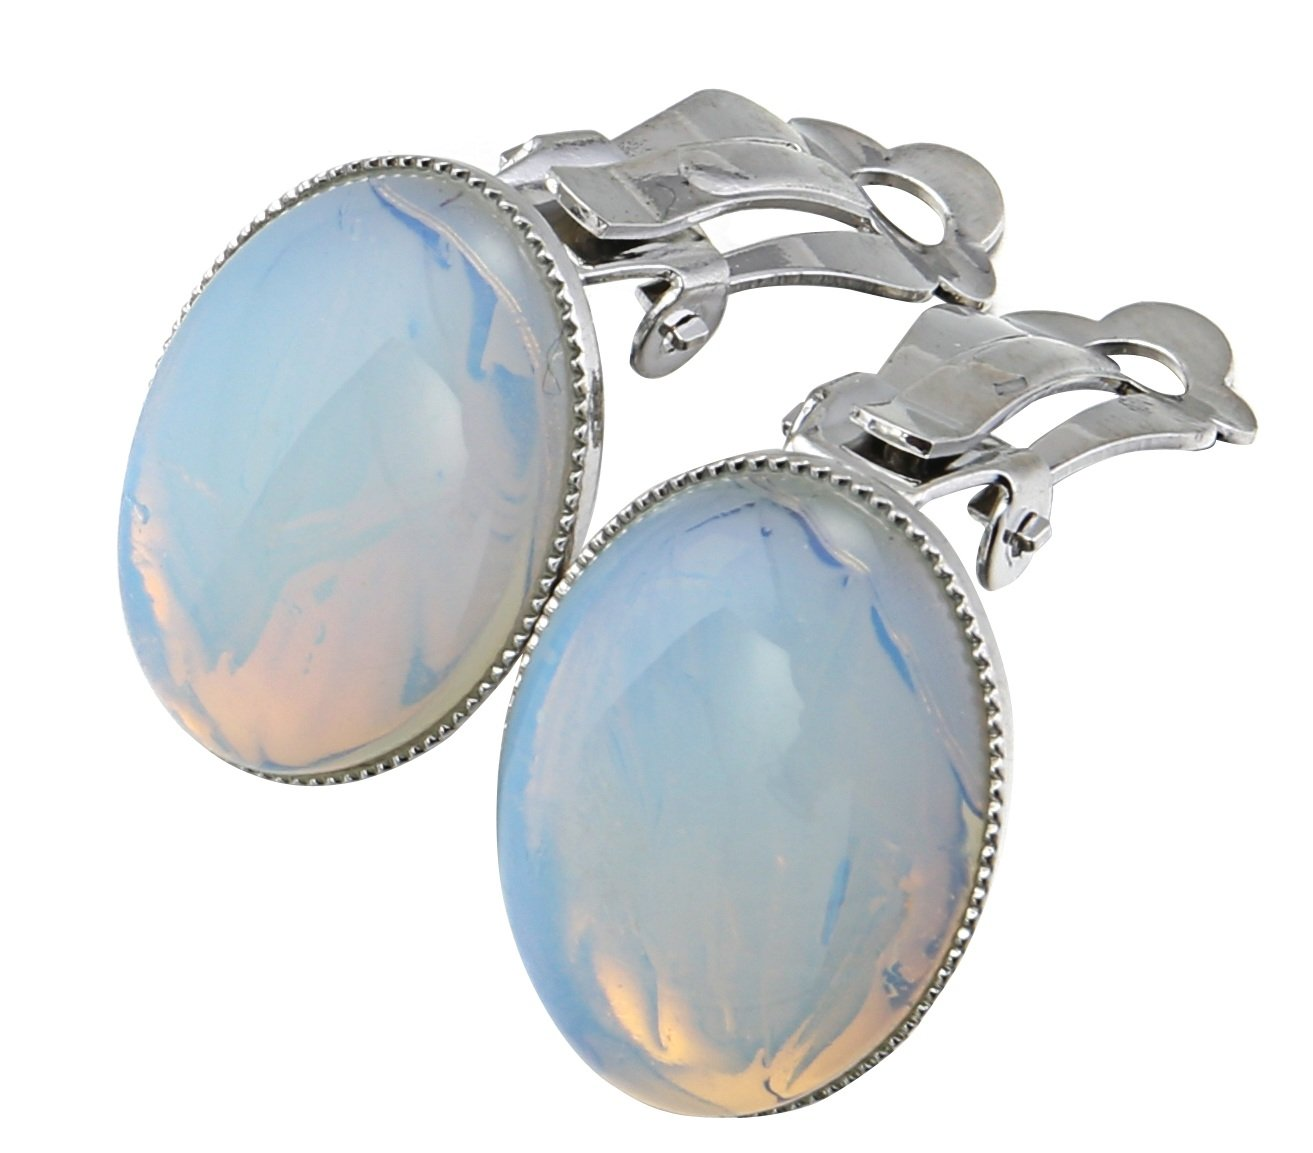 MagicYiMu Women's Jewelry Oval Simulated Opal Clip-On Earrings by MagicYiMu (Image #2)